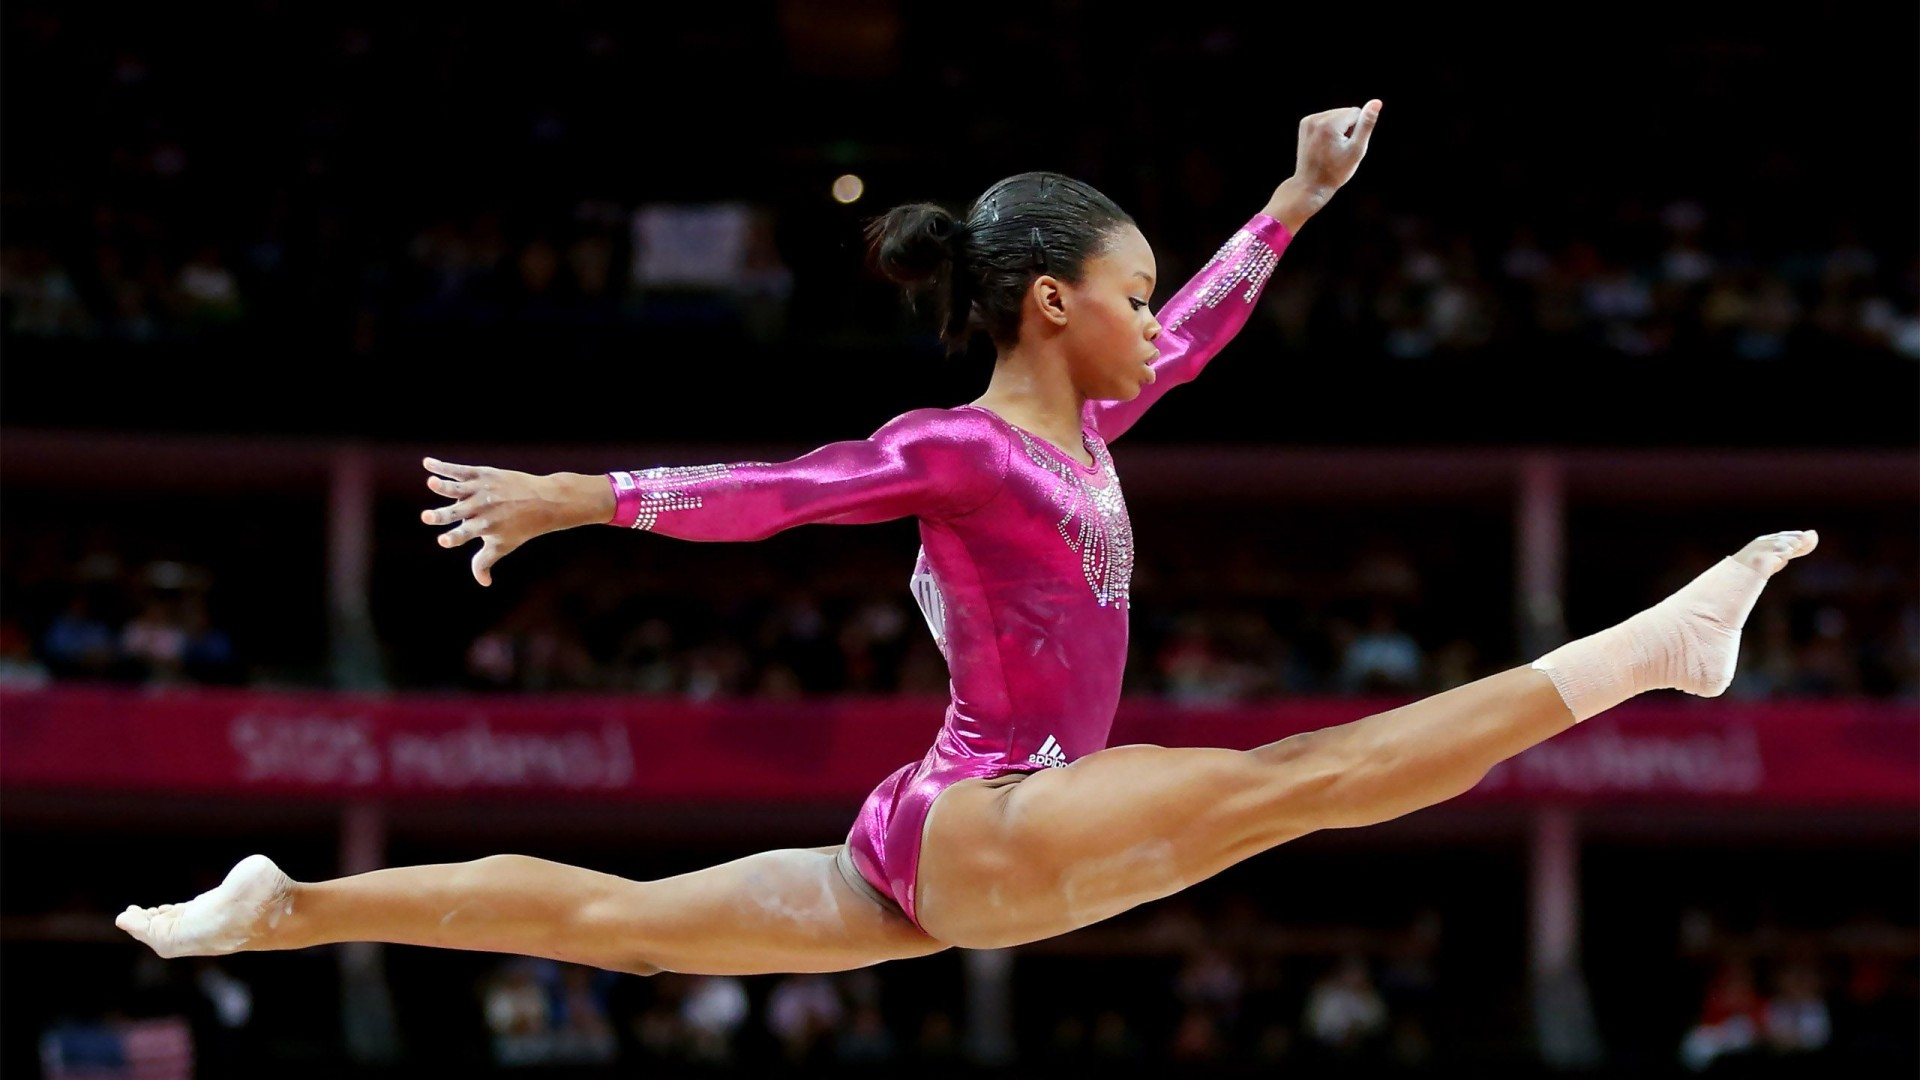 Gymnast gallery picture 45